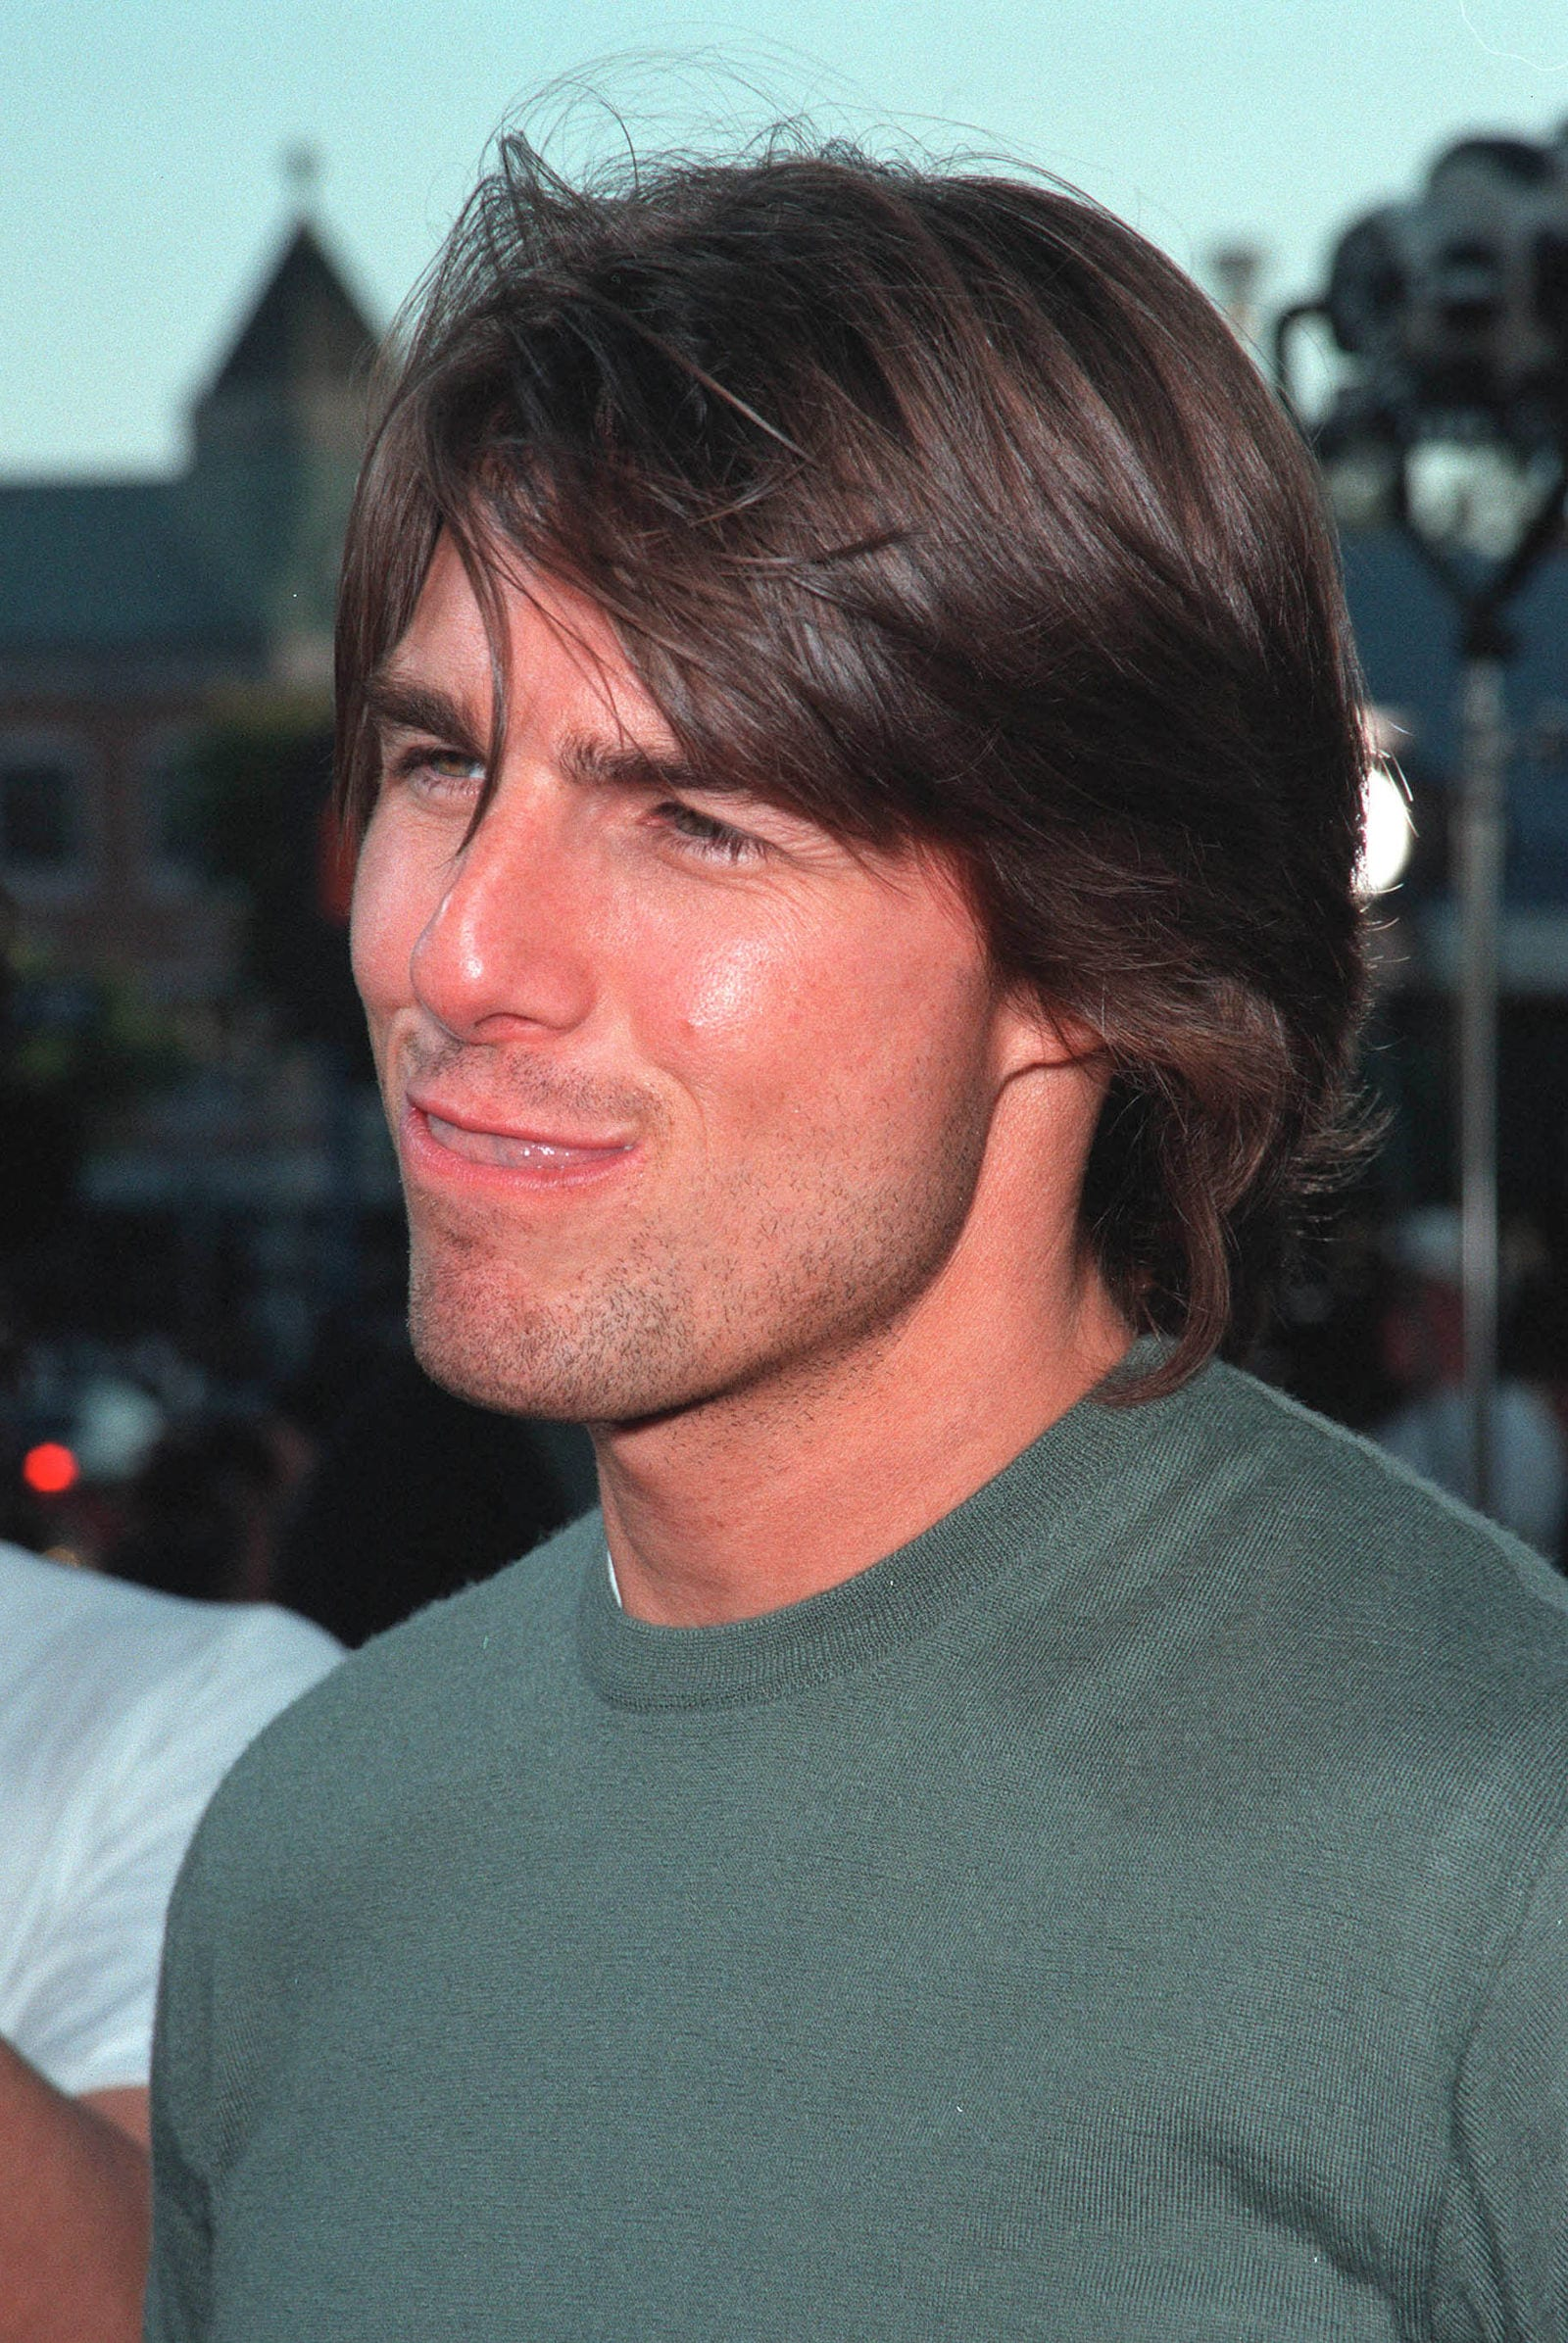 TOM CRUISE mop top hairstyle by Featureflash Photo Agency